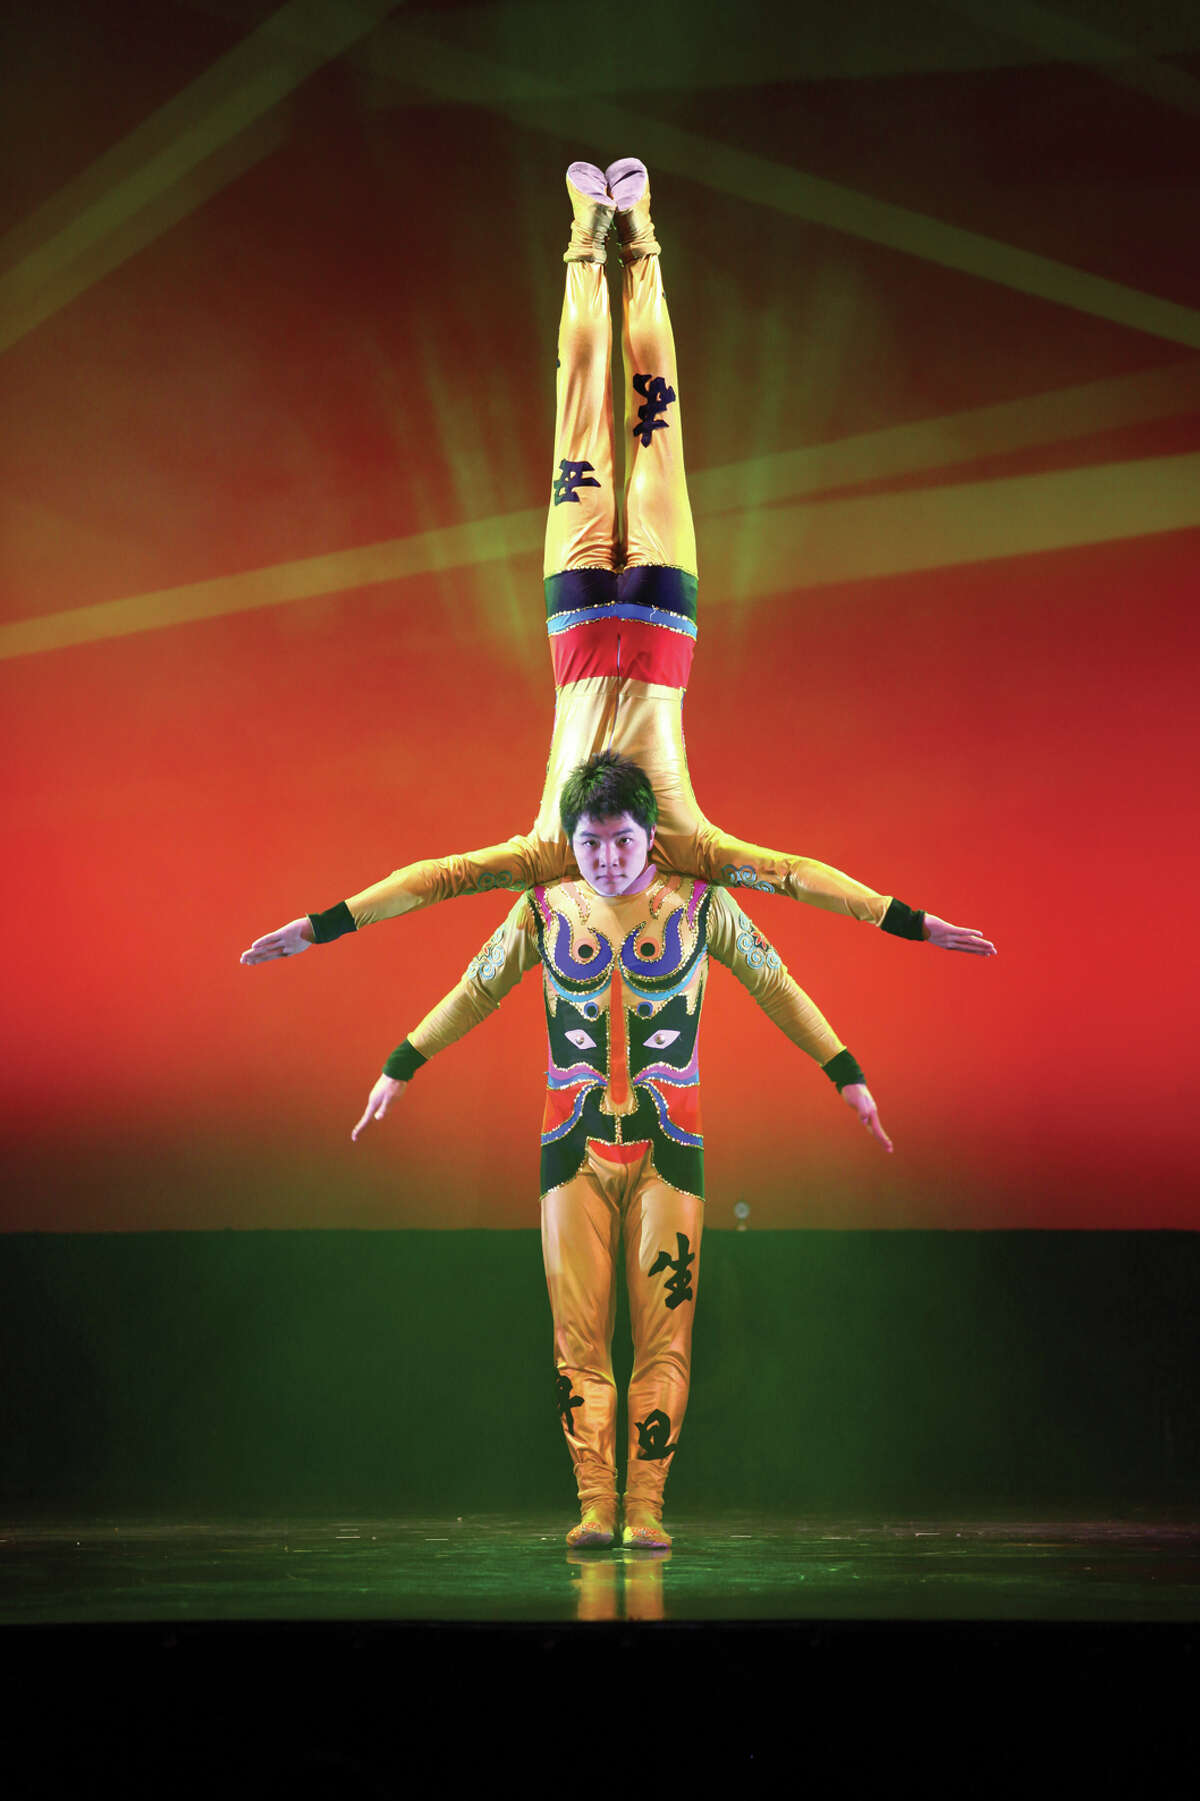 The New Shanghai Circus will perform at Ridgefield Playhouse on Sunday, March 6.